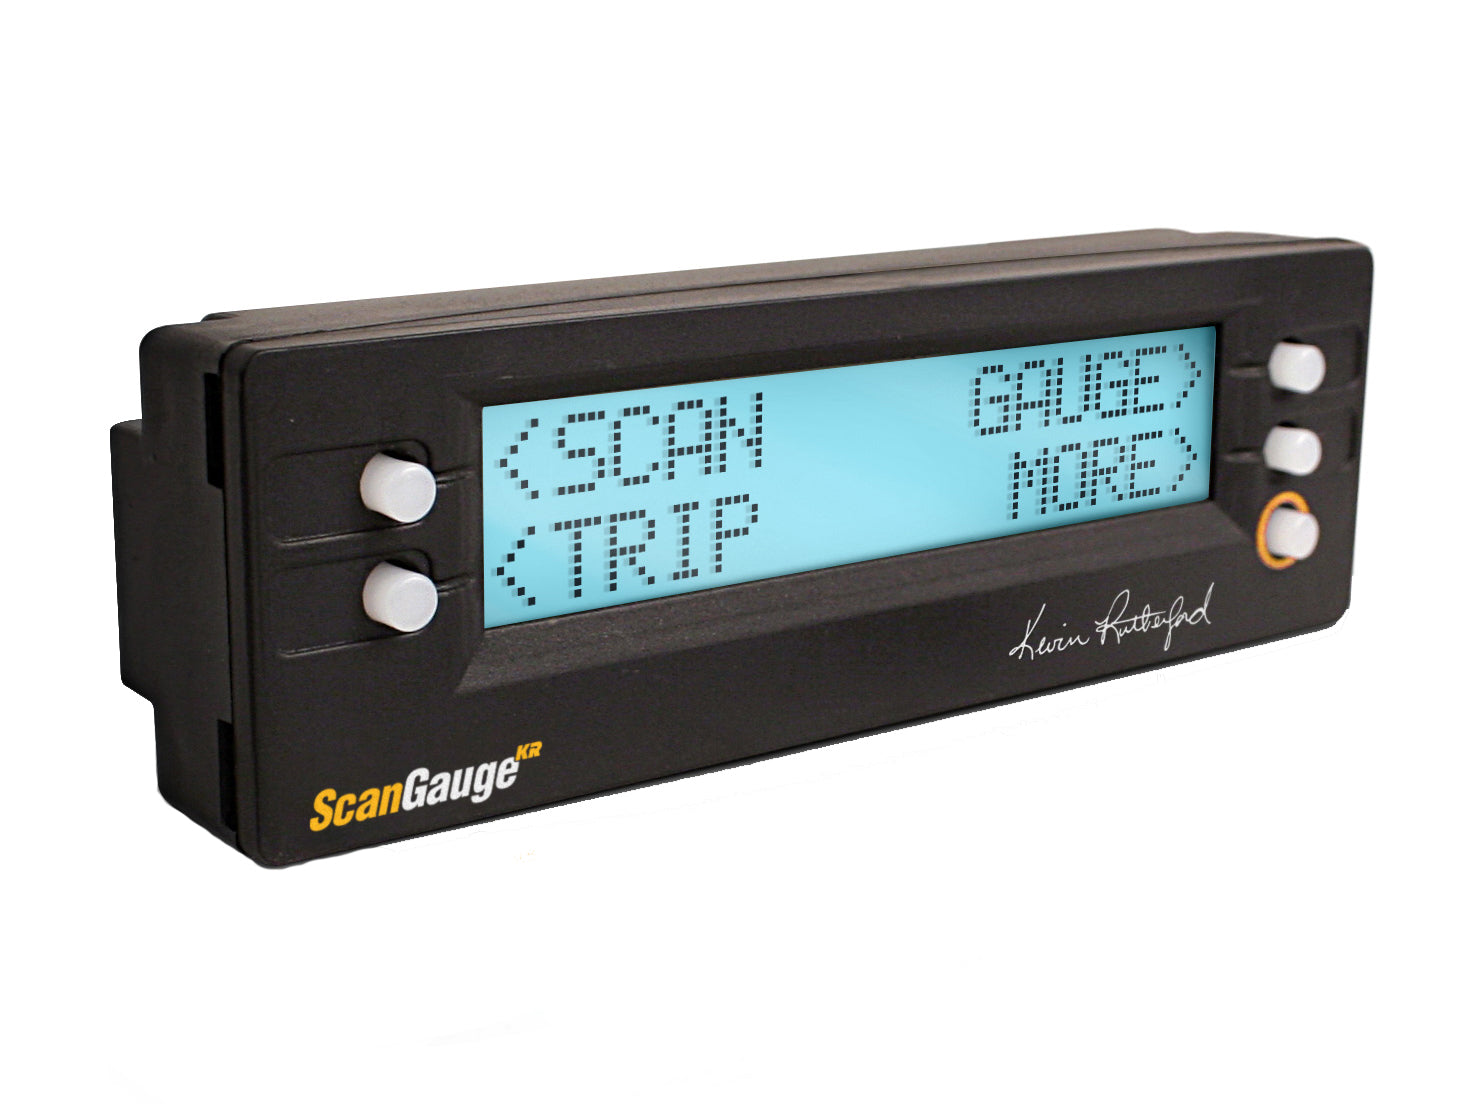 Kevin Rutherford Scan Gauge